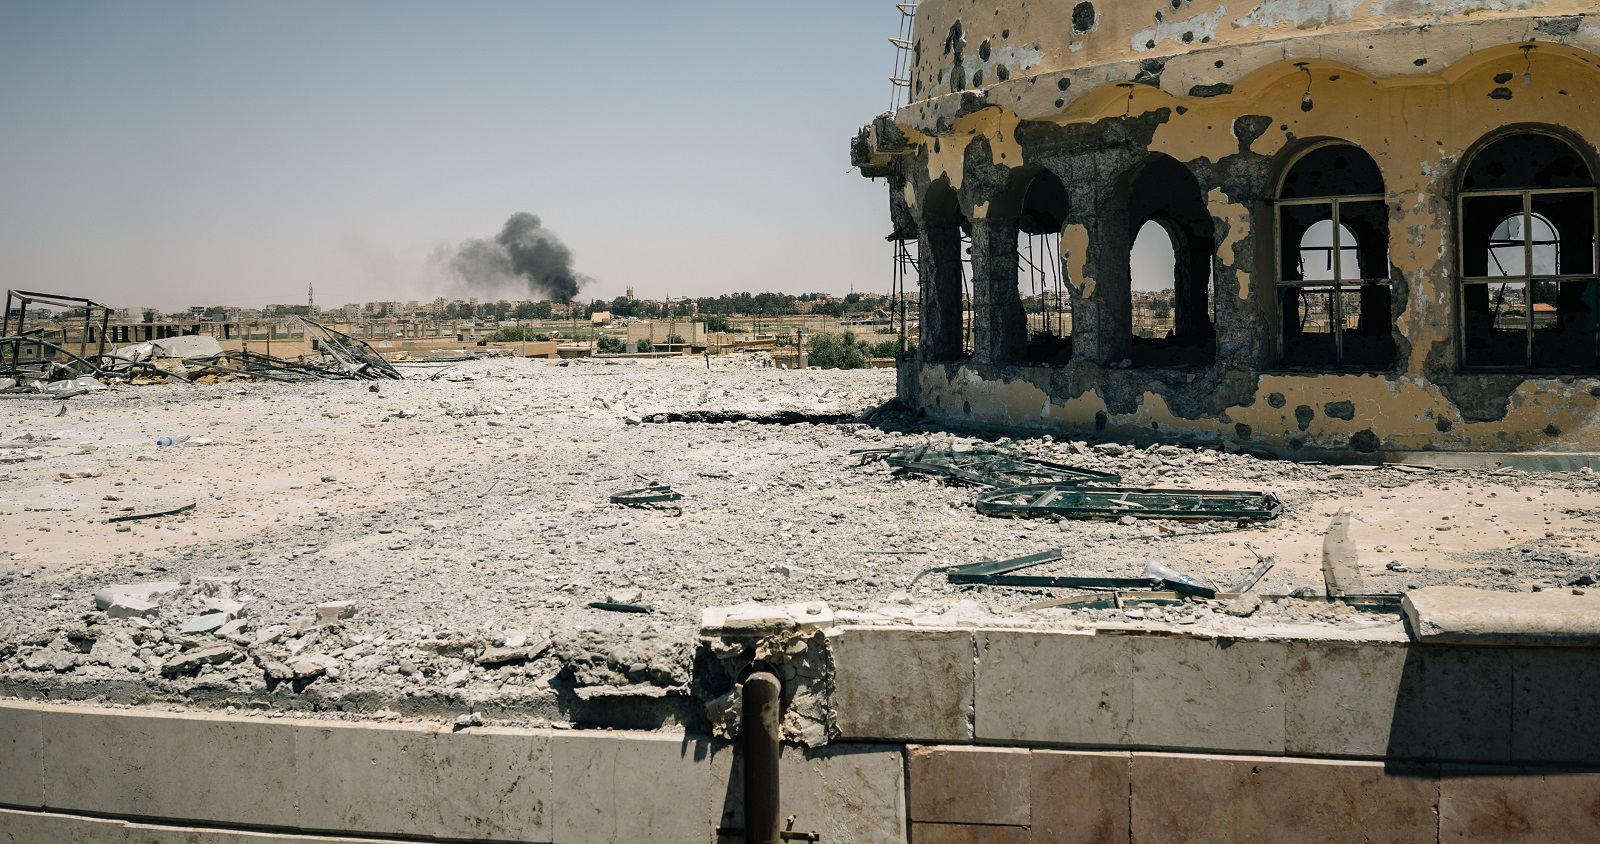 Smoke rises from an airstrike in Raqqa (Photo: Alice Martins/Getty Images)